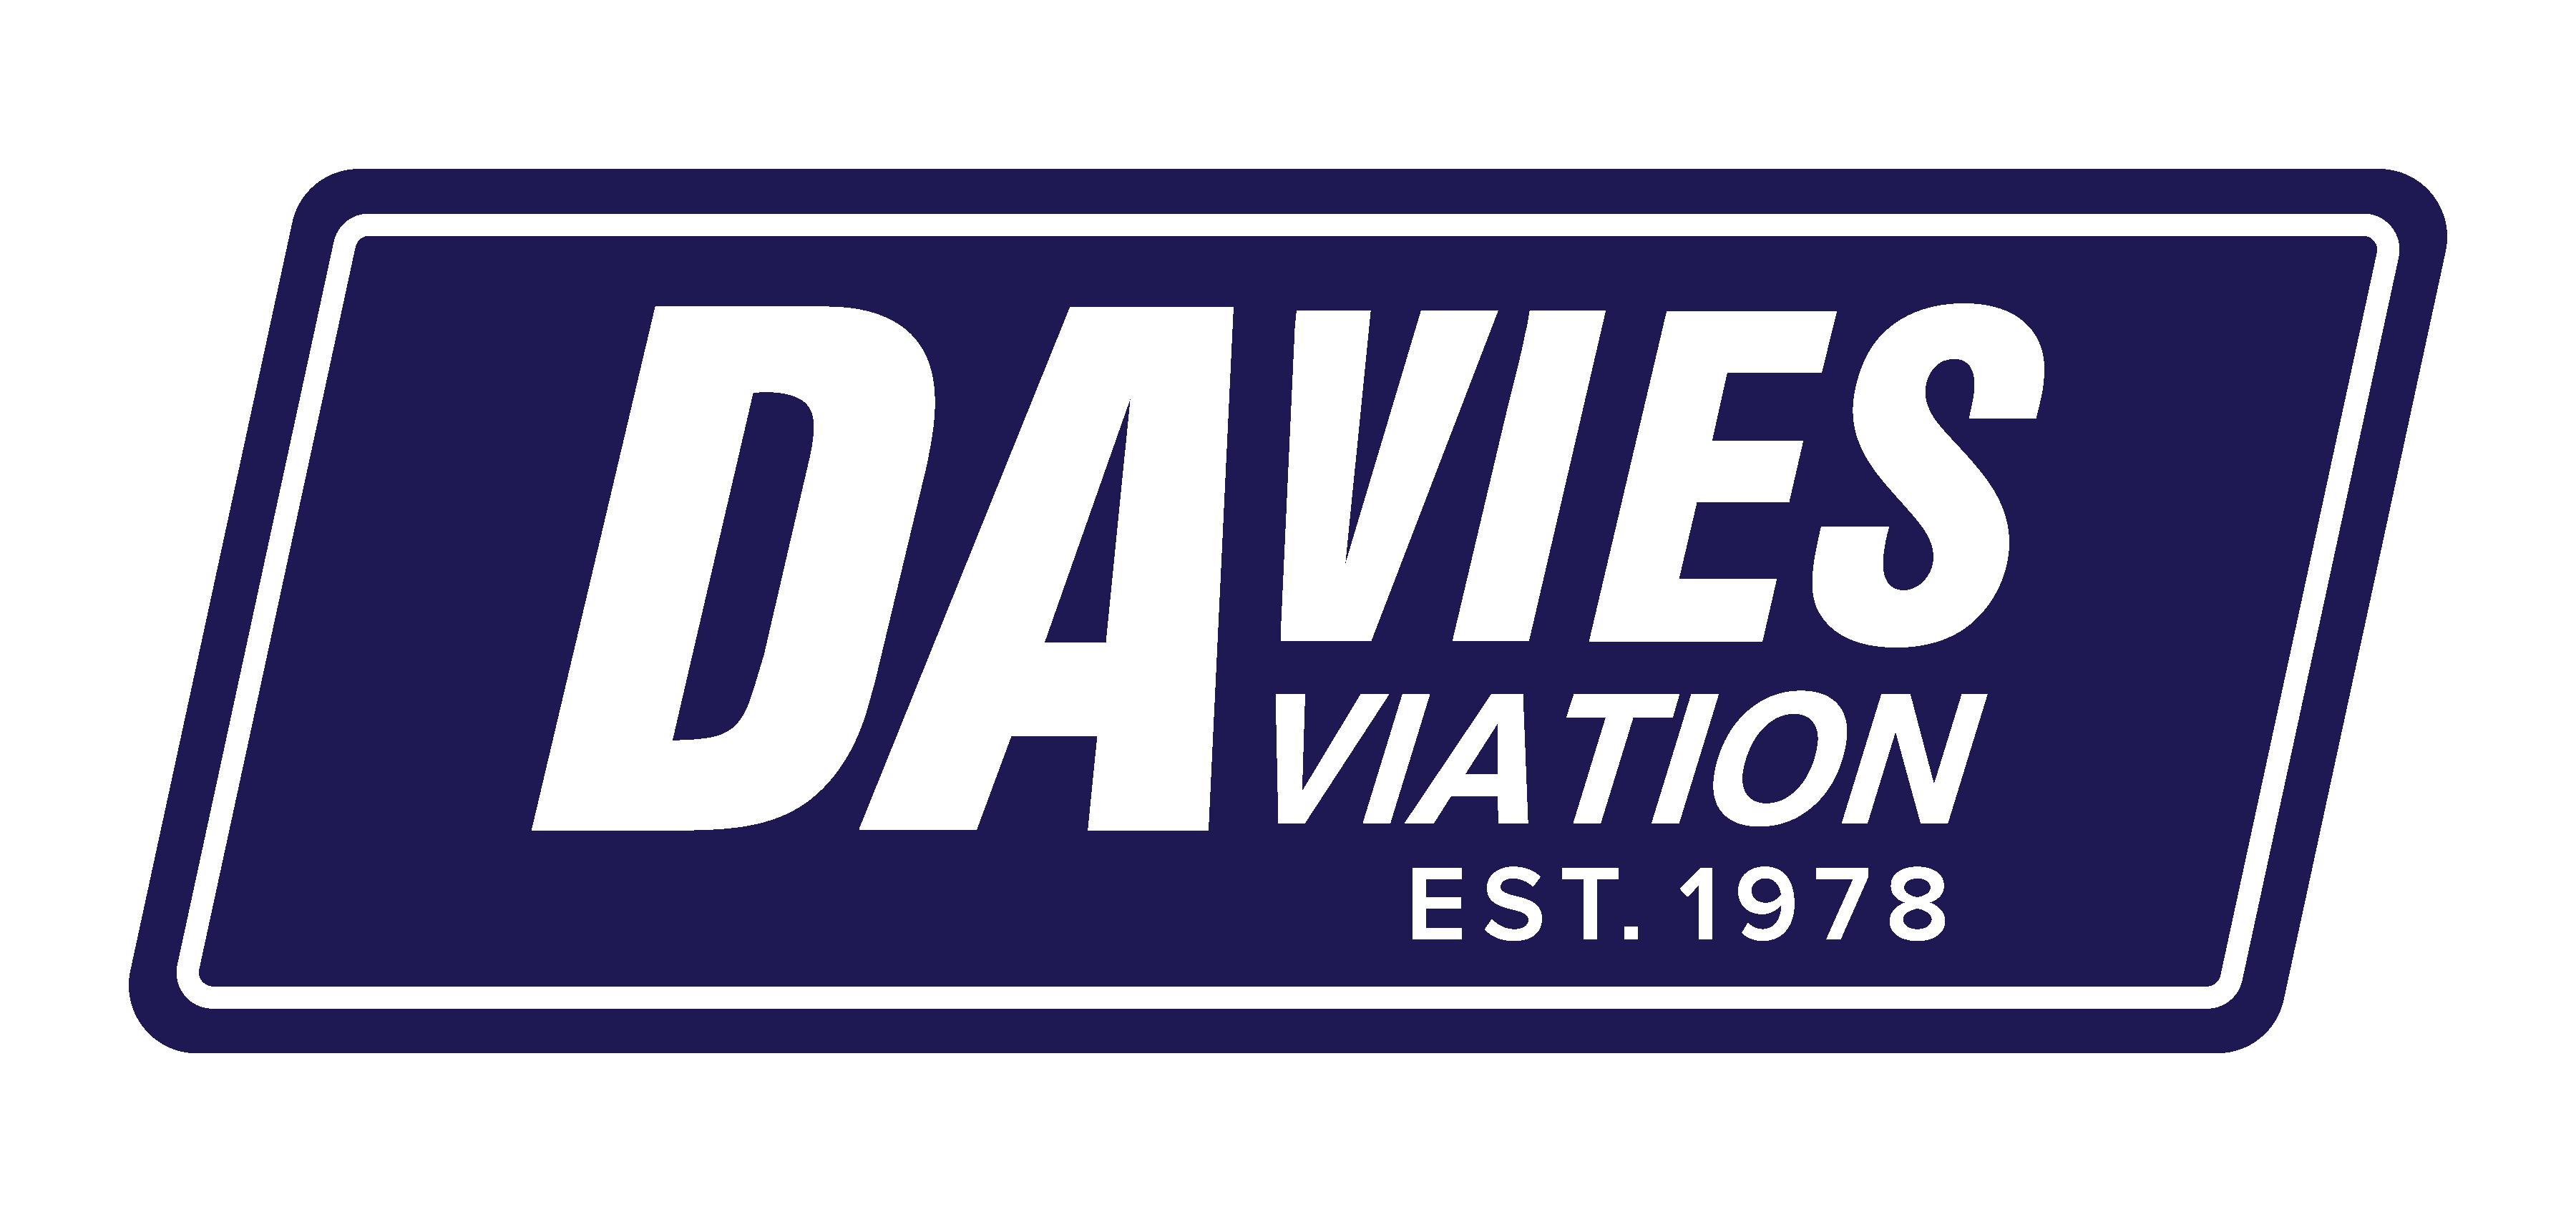 Davies Aviation PTY LTD